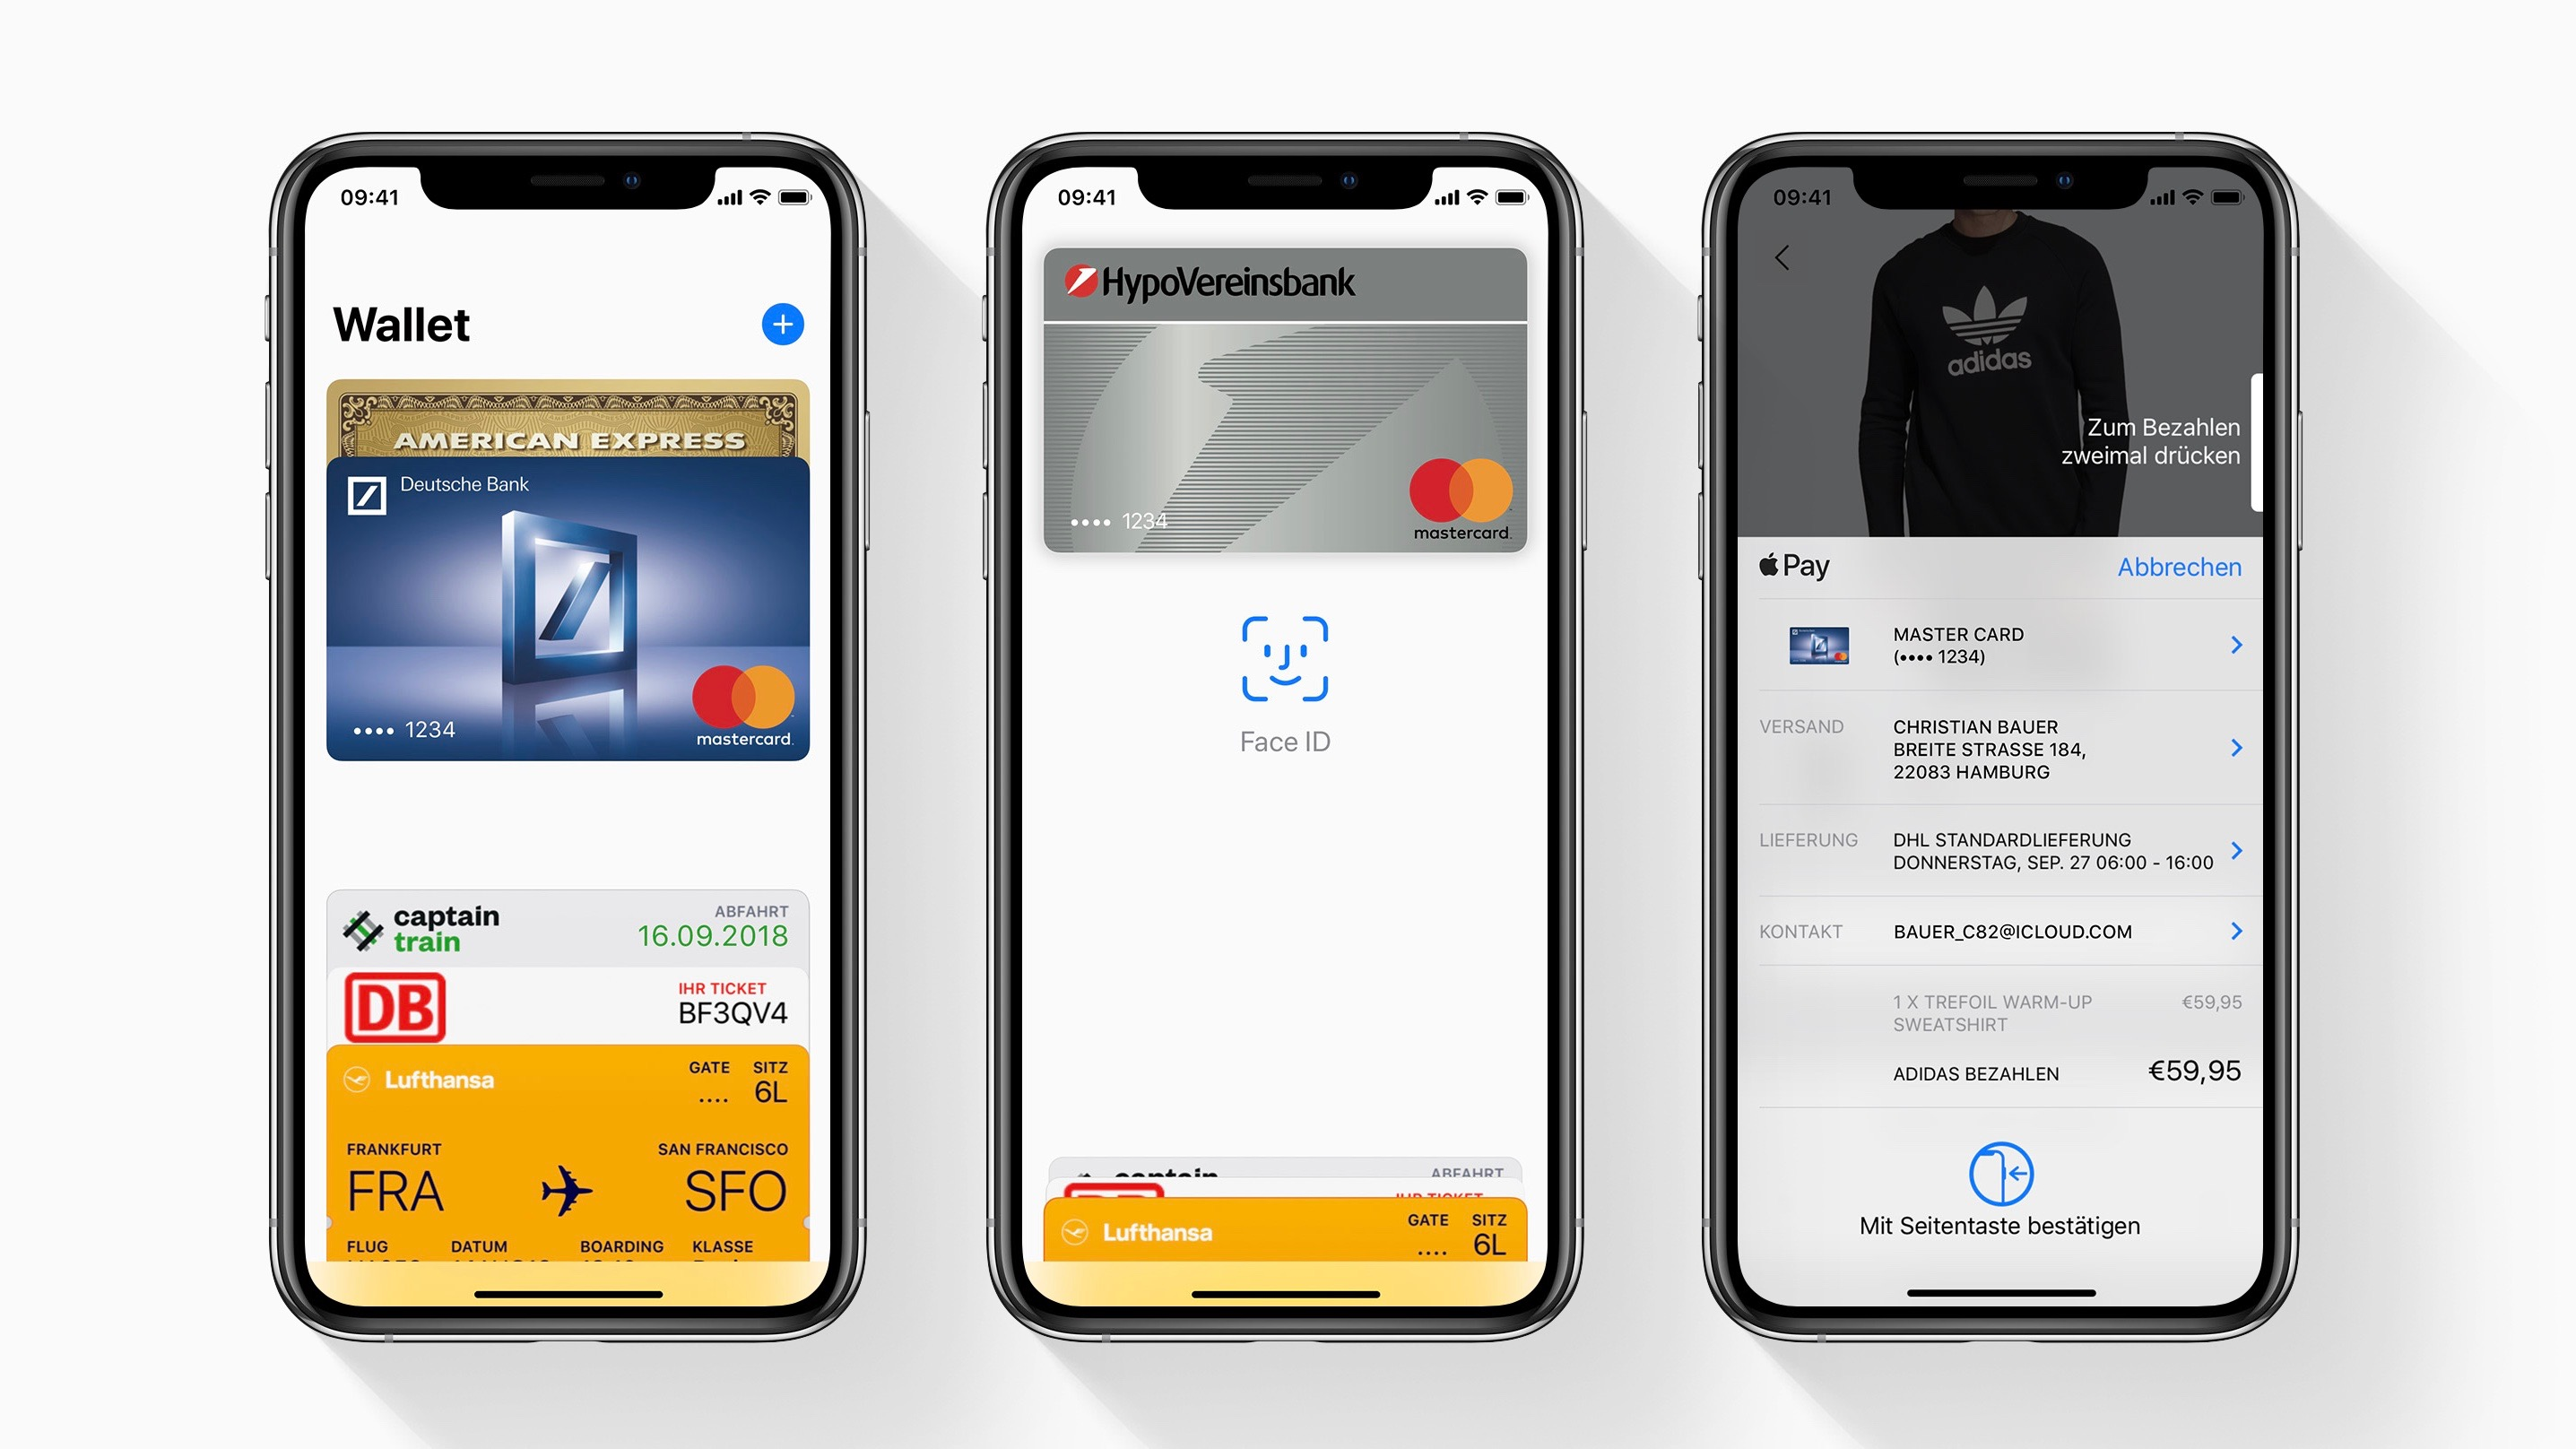 Apple Pay officially launches to users in Germany, here are the